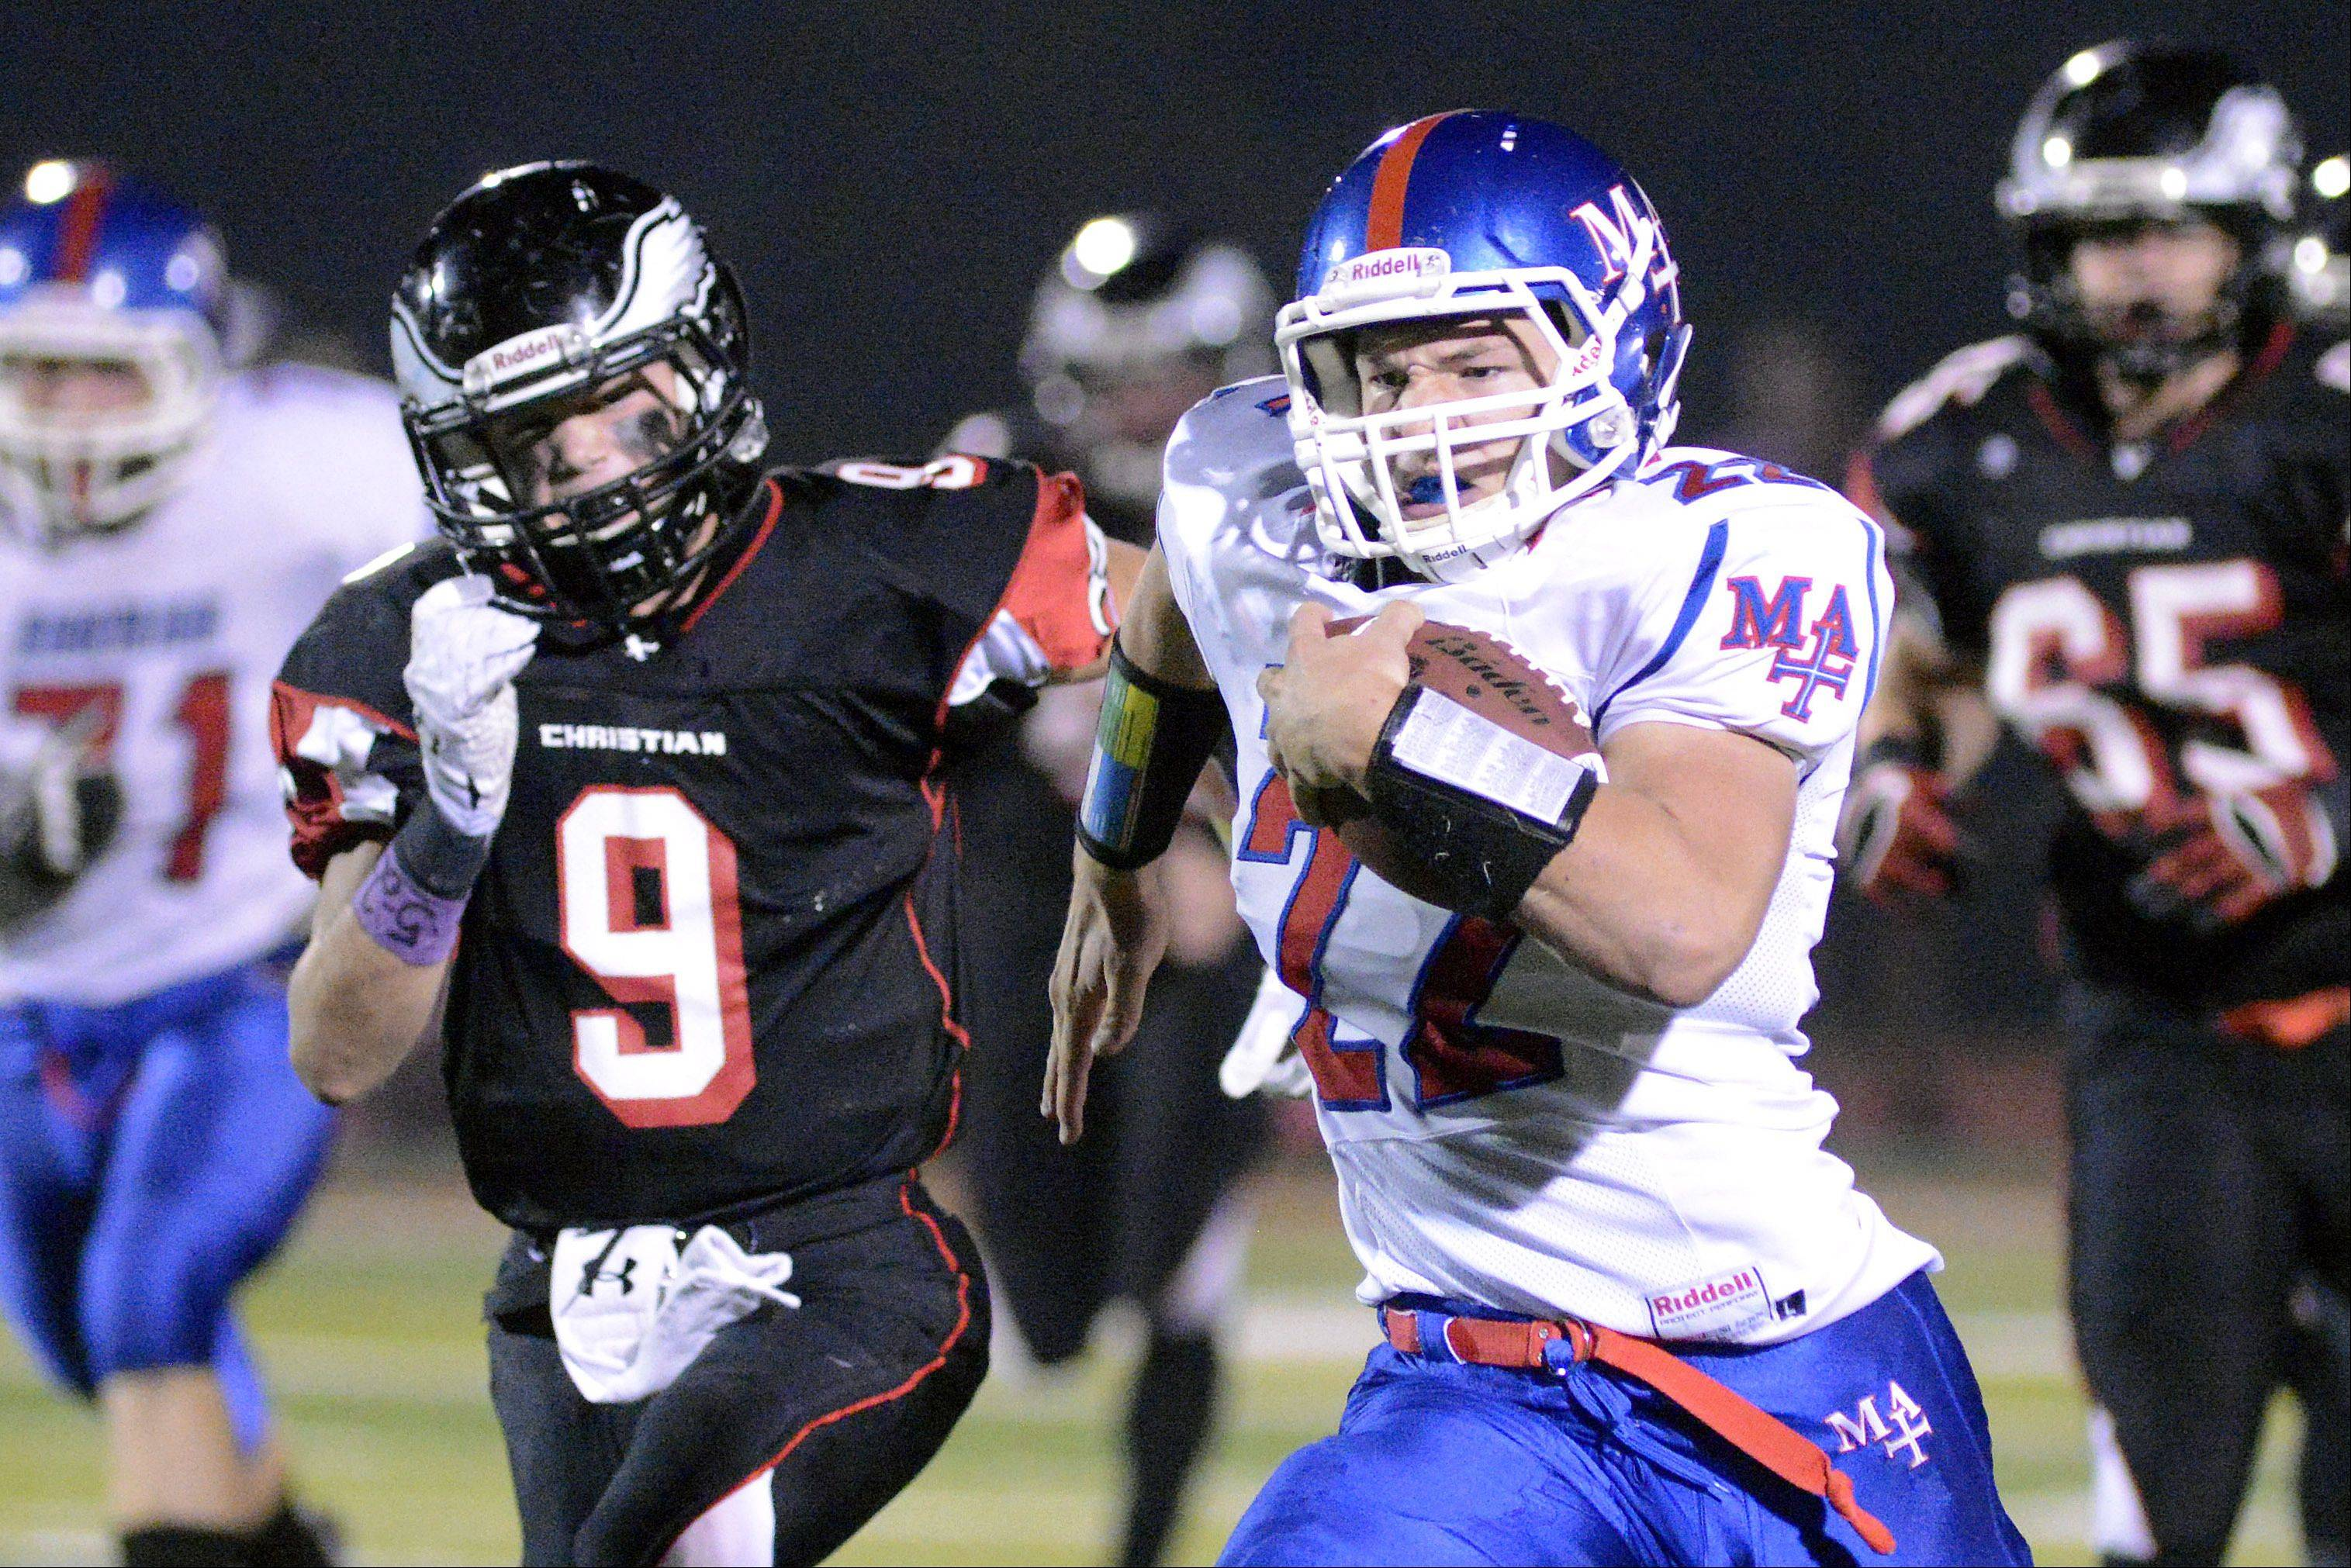 Marmion Academy's Jordan Glasgow sprints from Aurora Christian's defense on his way to scoring a touchdown in the first quarter on Friday, October 4.